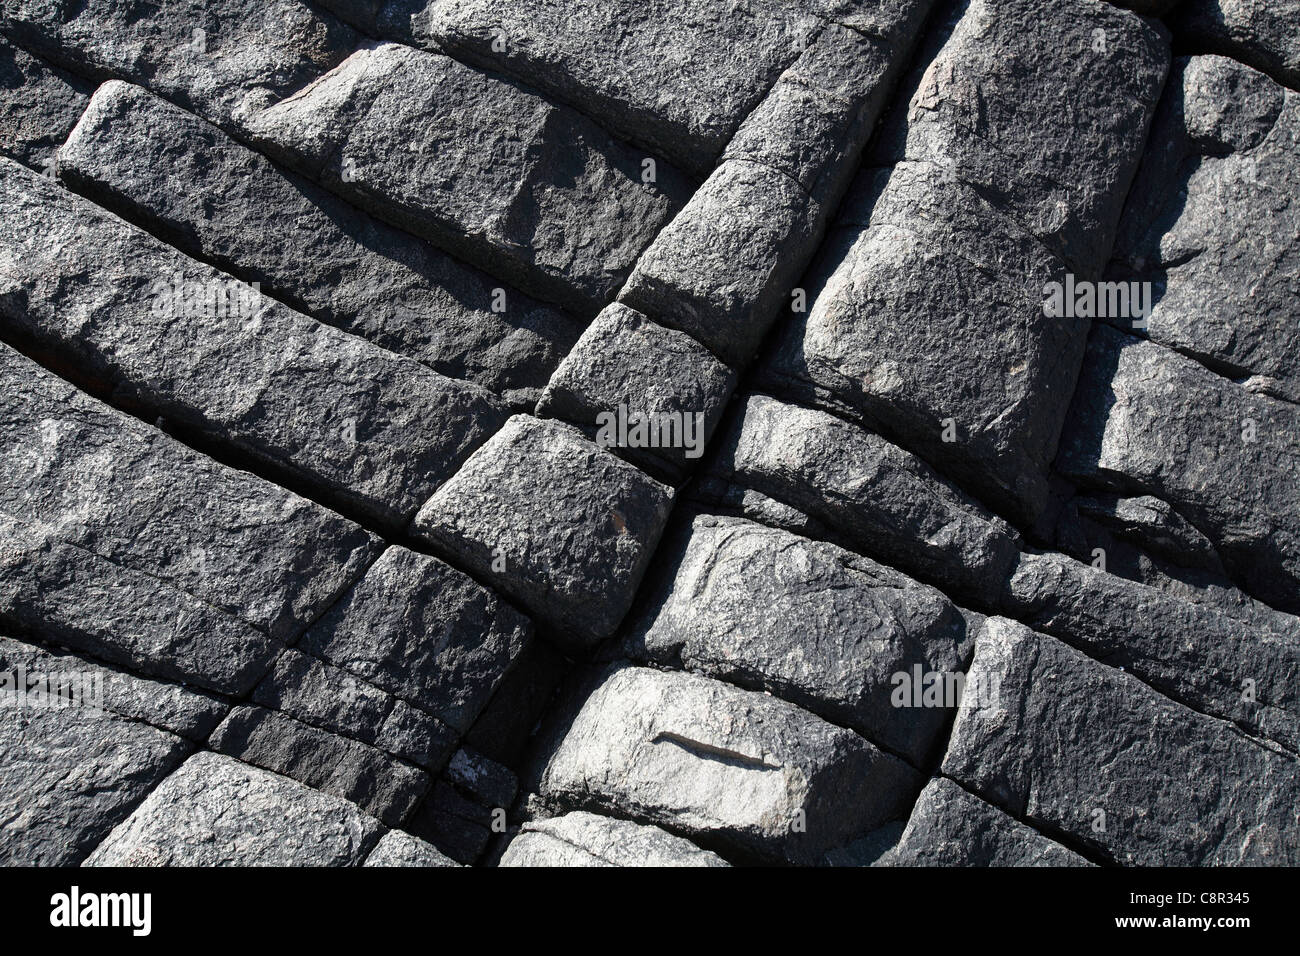 Basalt rock formation, Acadia National Park, Maine, USA - Stock Image